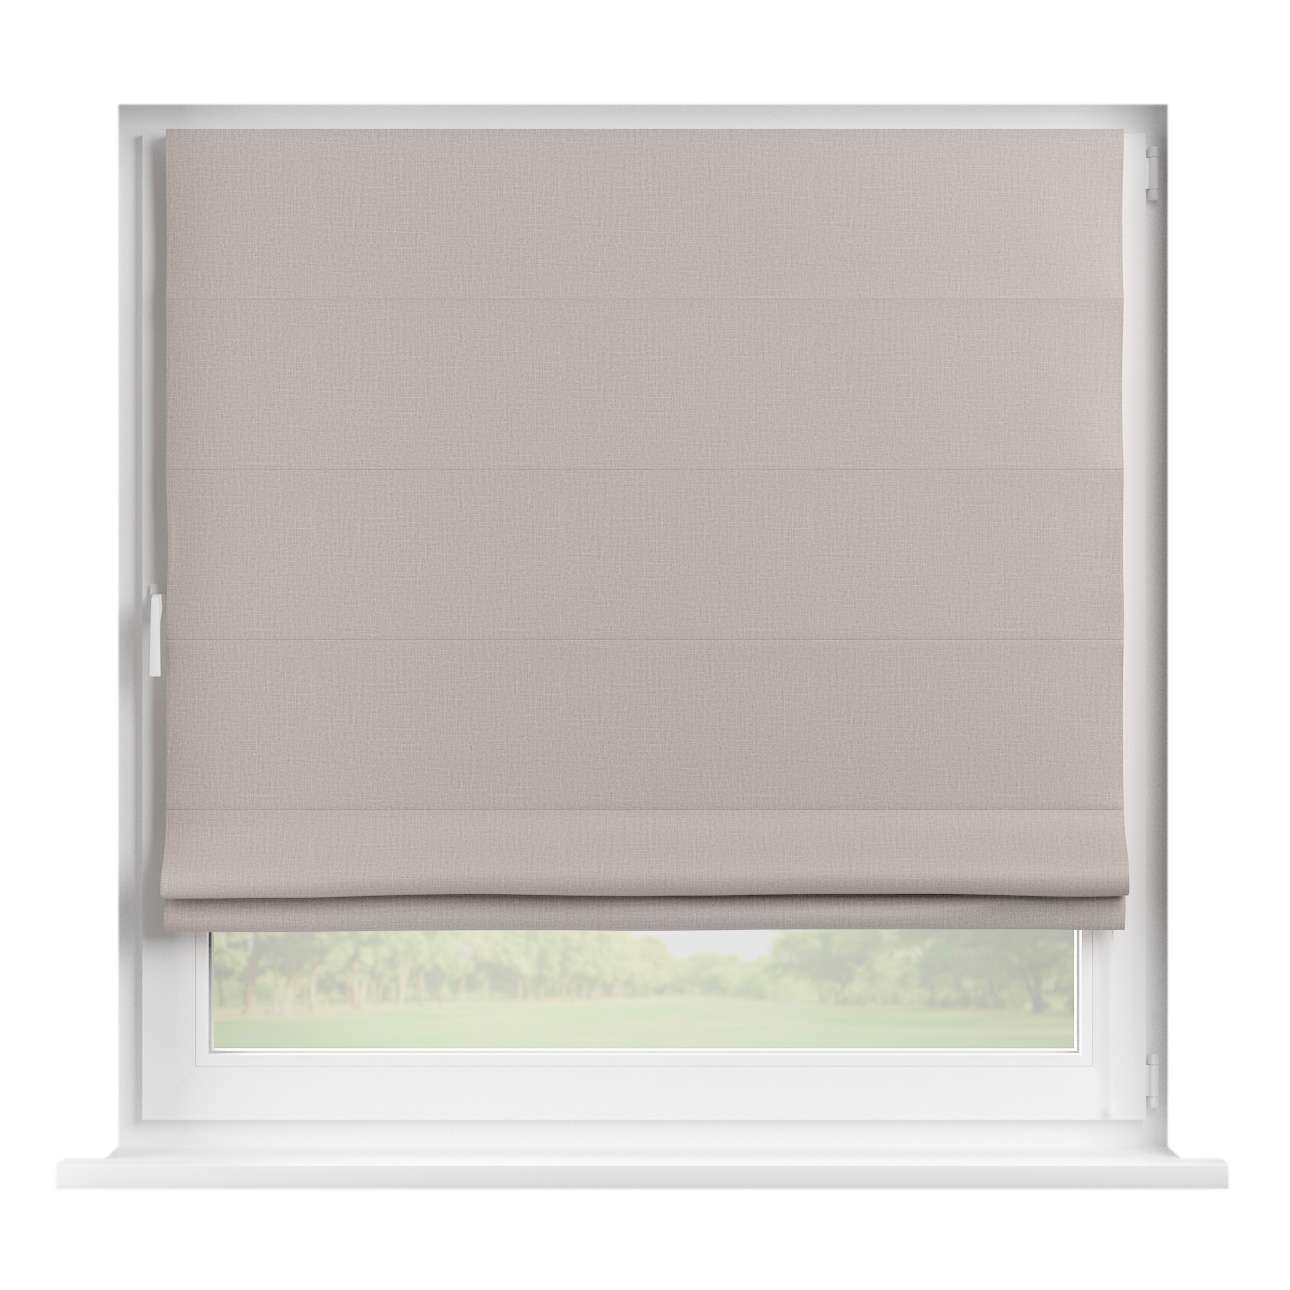 Blackout roman blind 80 x 170 cm (31,5 x 67 inch) in collection Blackout, fabric: 269-64